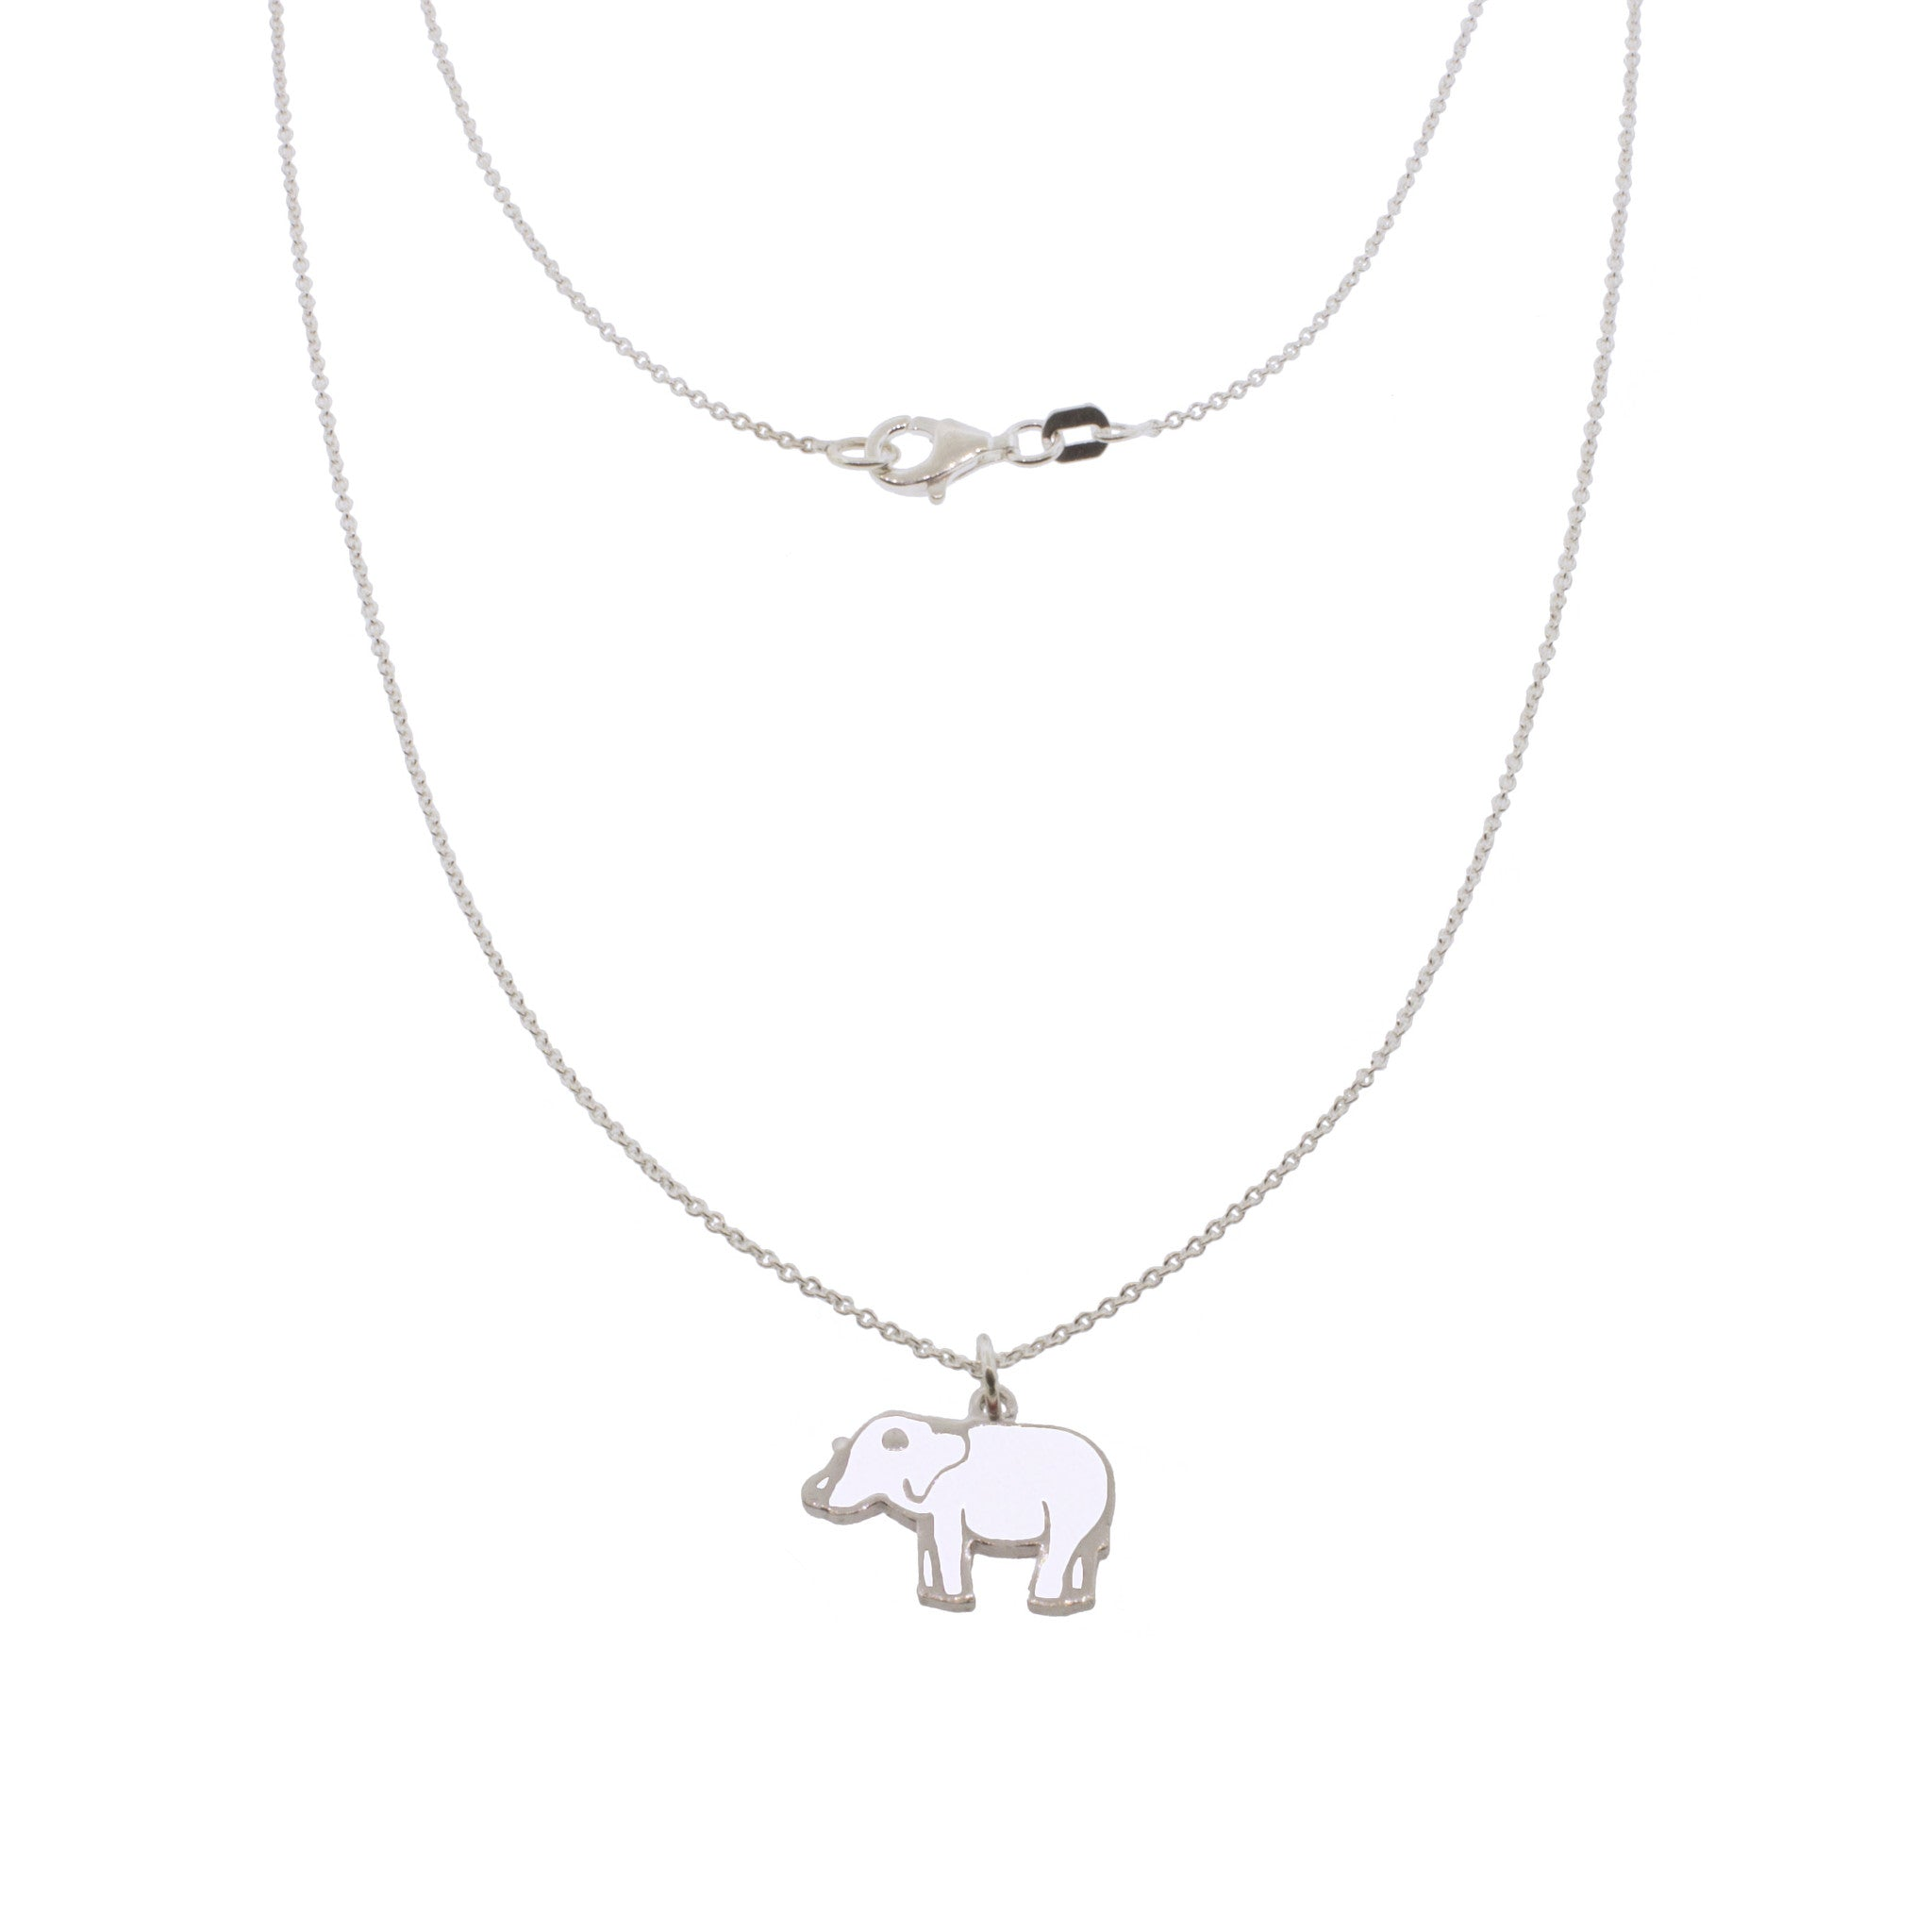 17-inch Lucky Elephant Silver Necklace - White